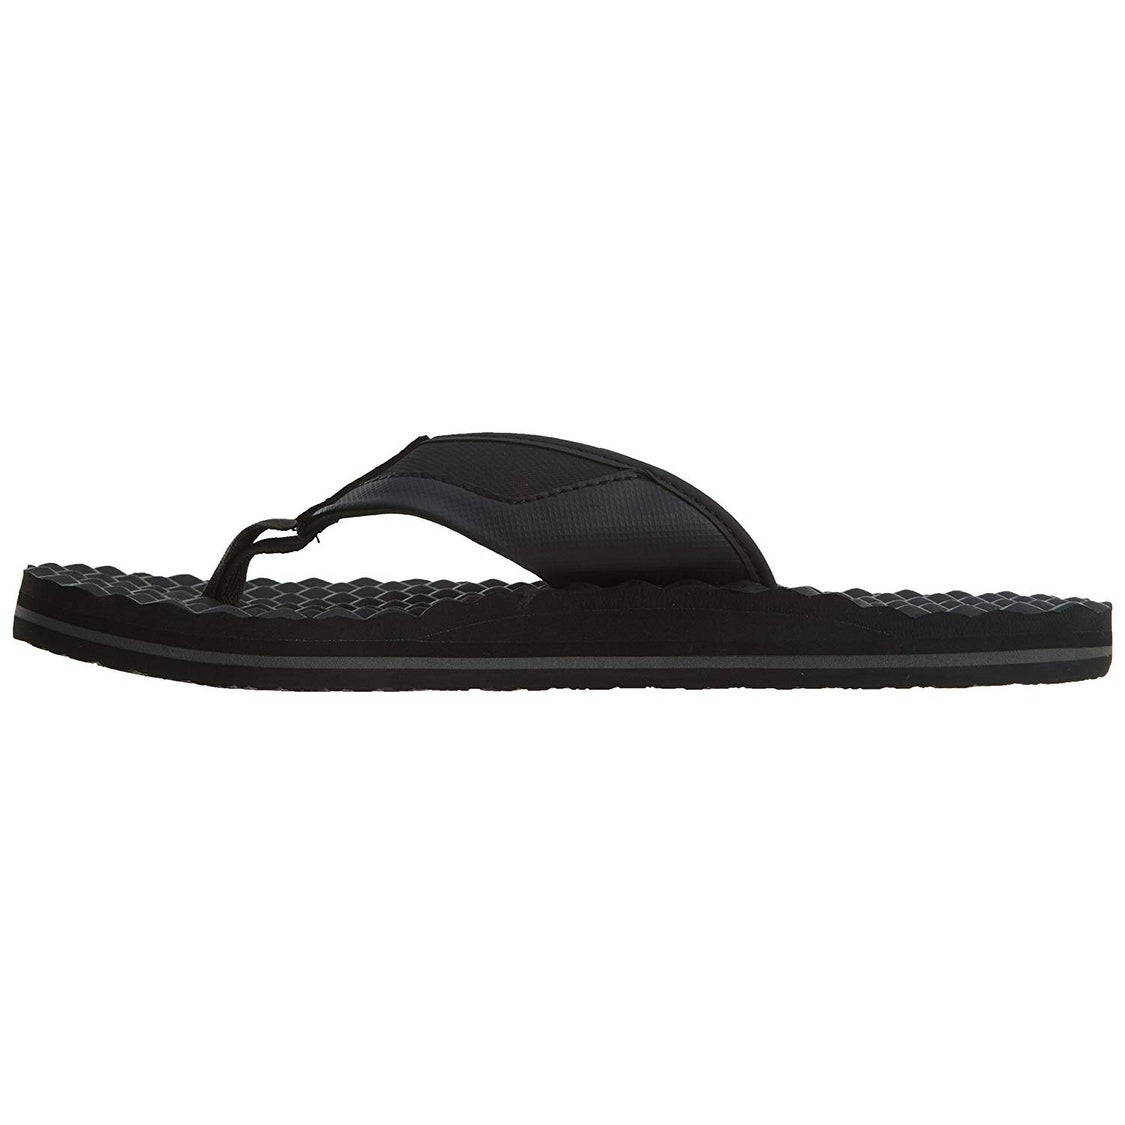 09de51ce051e Shop The North Face Mens Base Camp Plus Flip Flop Lace Up Open Toe Flip  Flops - Free Shipping On Orders Over  45 - Overstock - 25696089